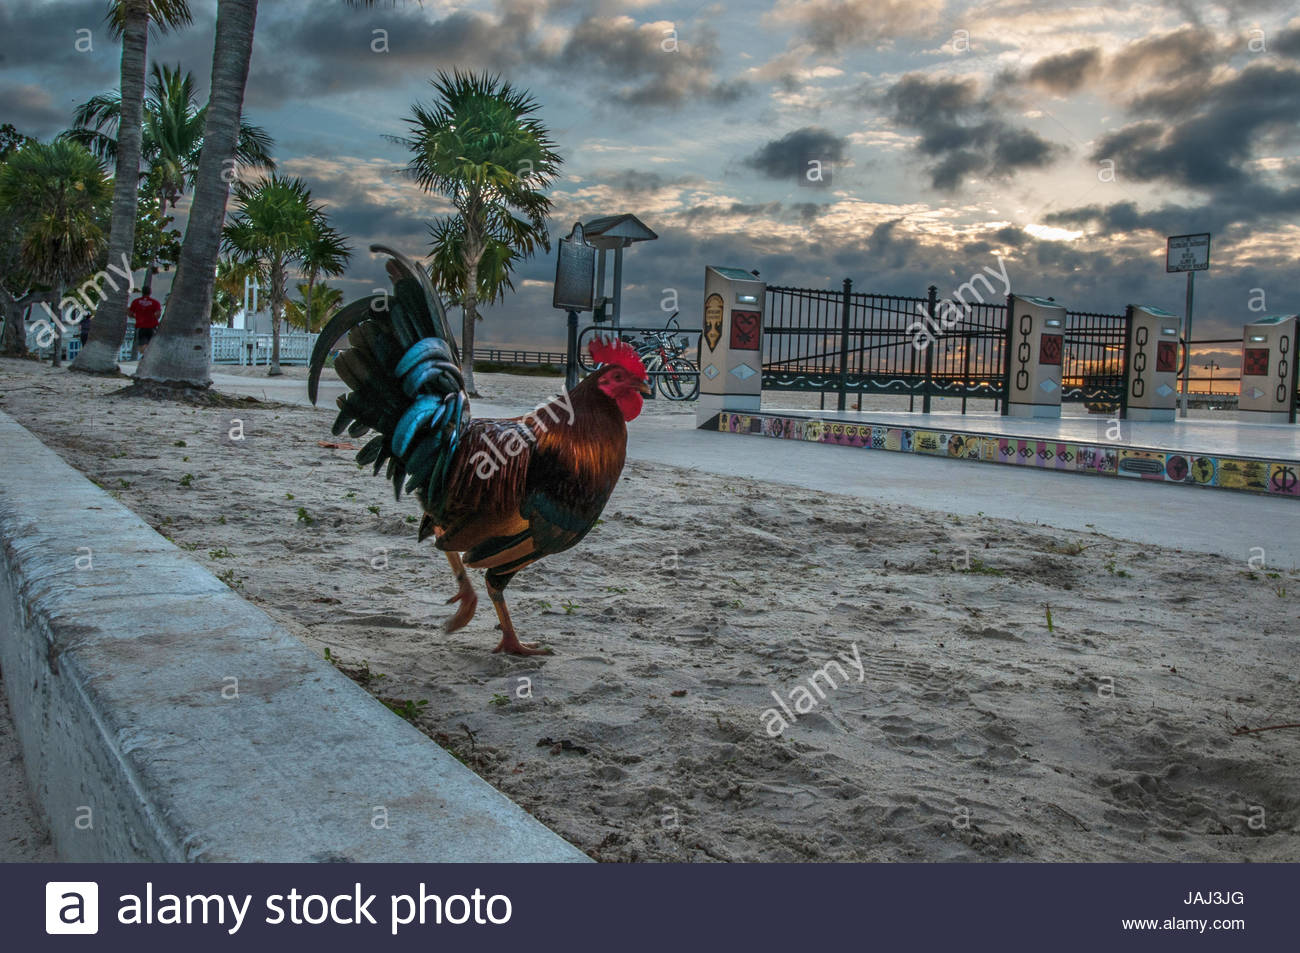 Rooster on Higgs Beach in Key West, Florida. - Stock Image